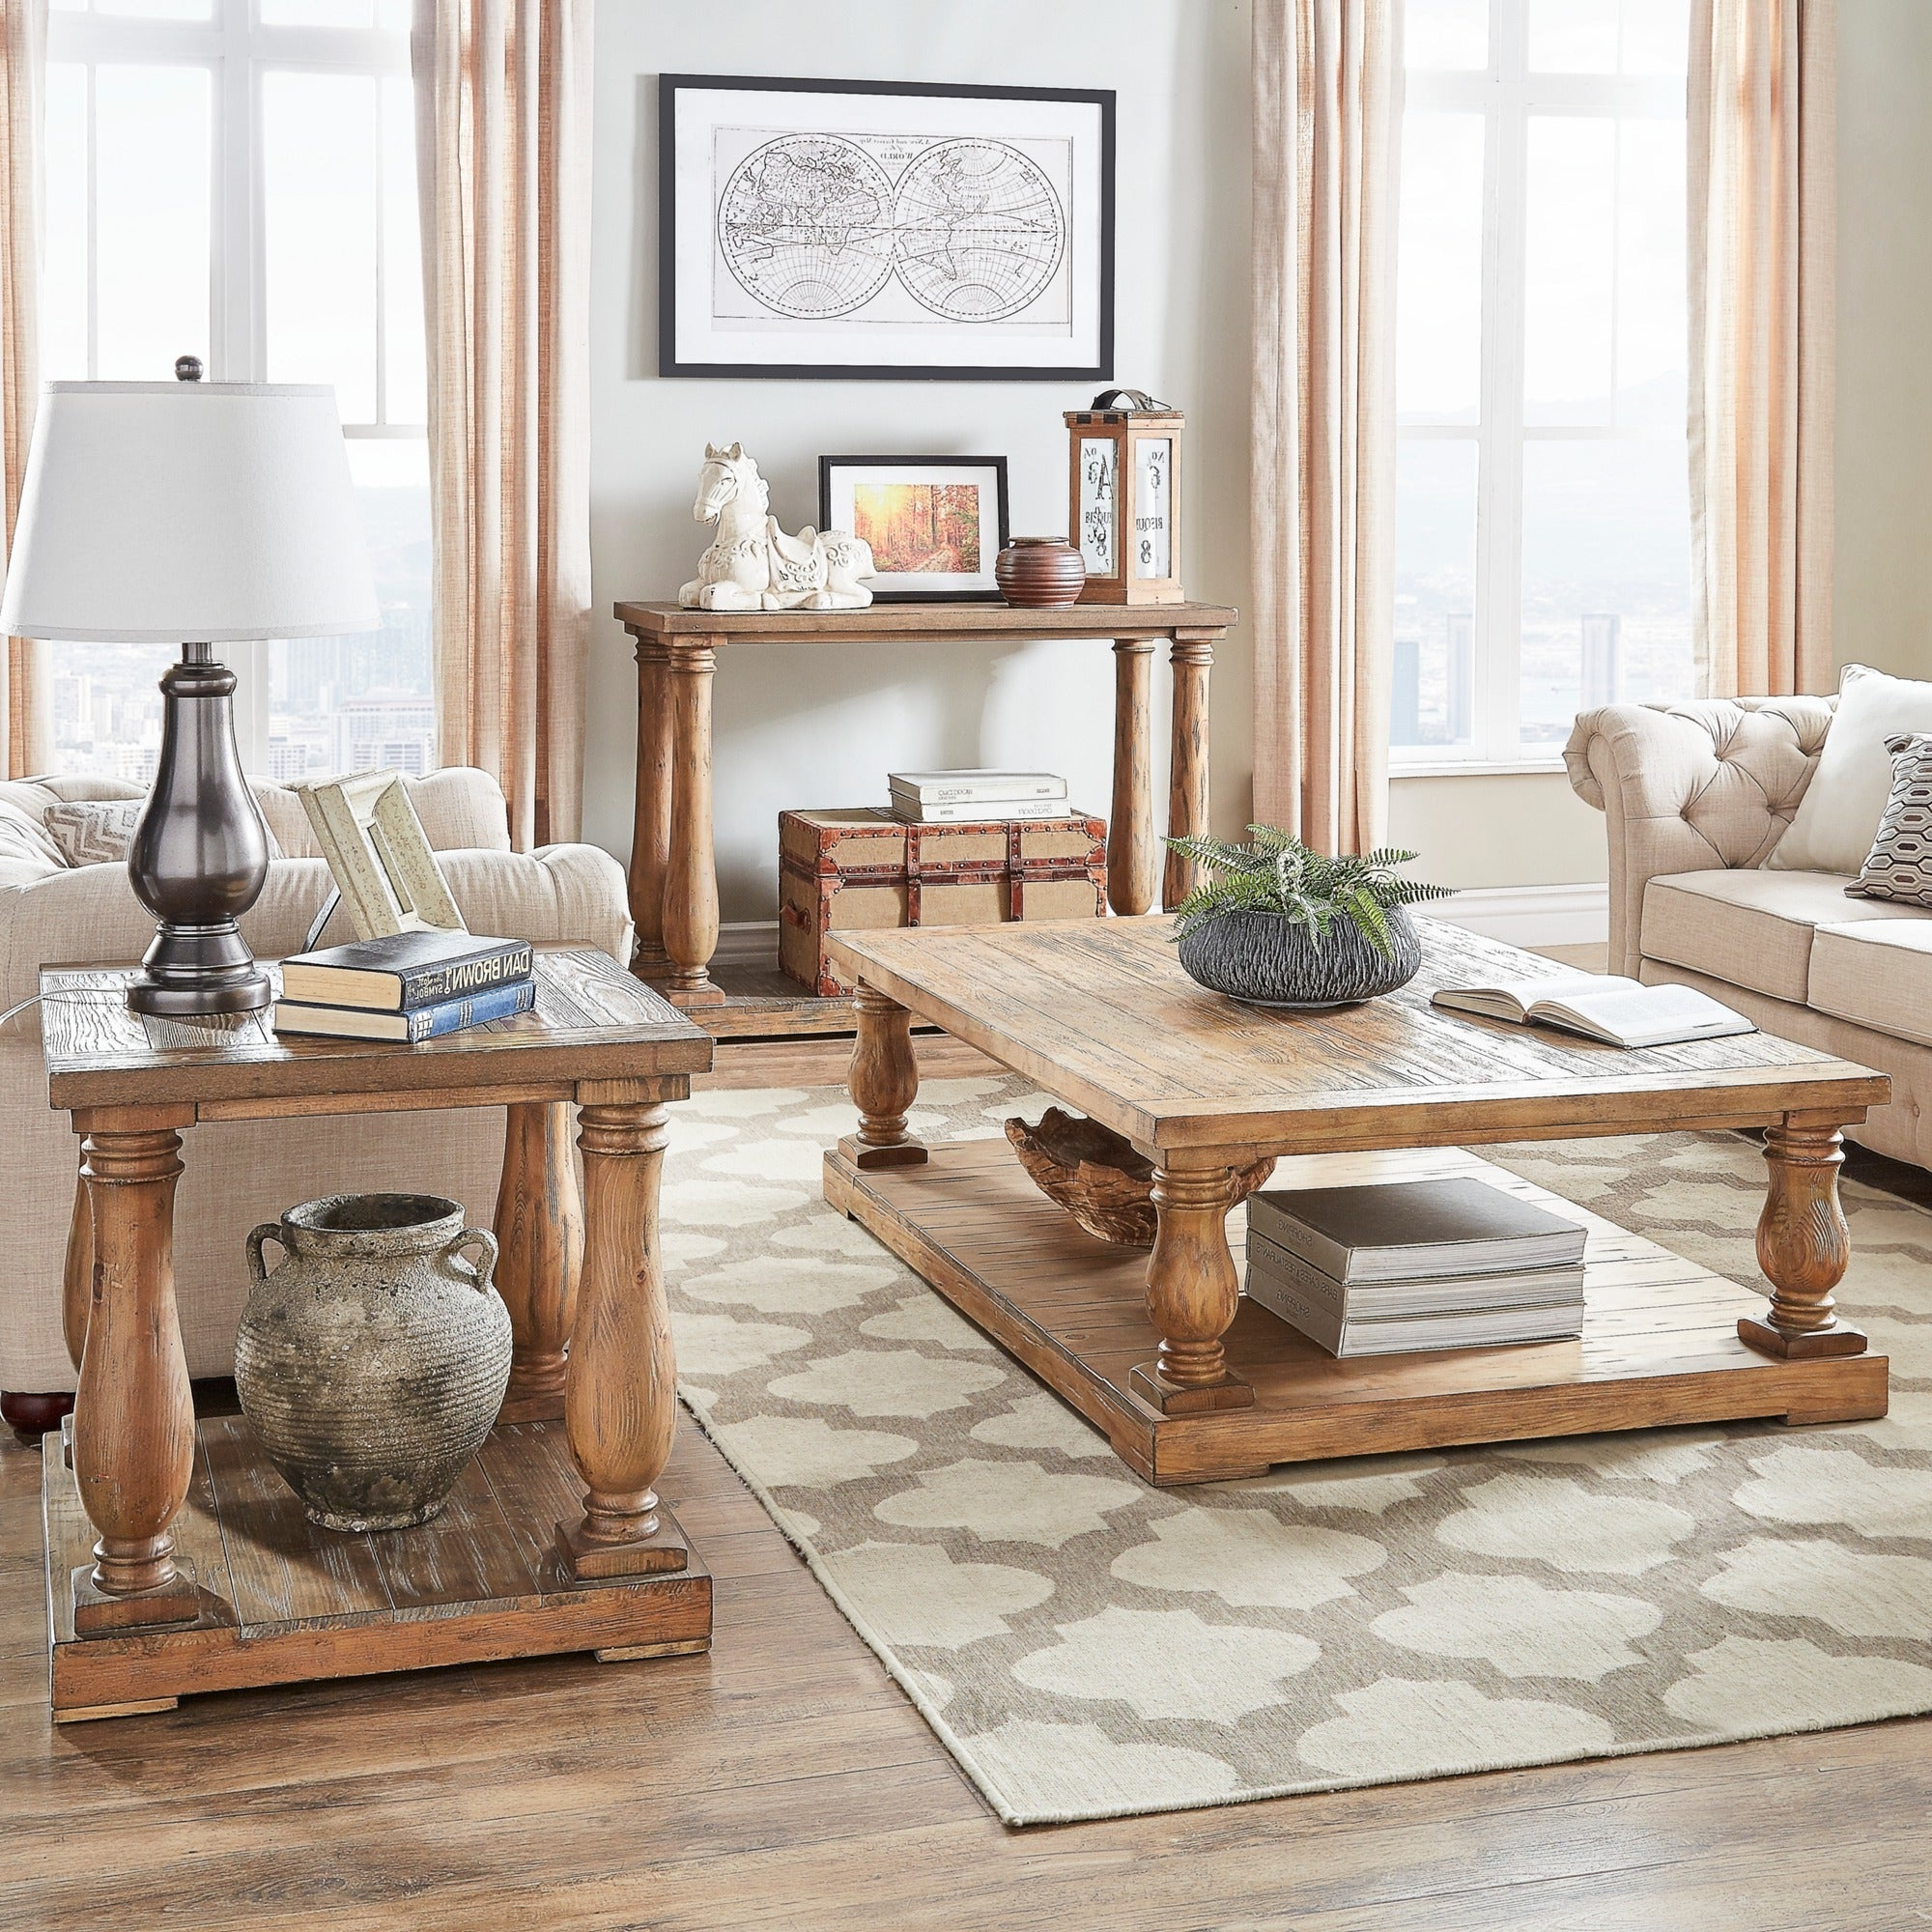 Edmaire Rustic Pine Baluster 3 Piece Table Setinspire Q Artisan In 2020 Edmaire Rustic Pine Baluster Coffee Tables (Gallery 5 of 20)